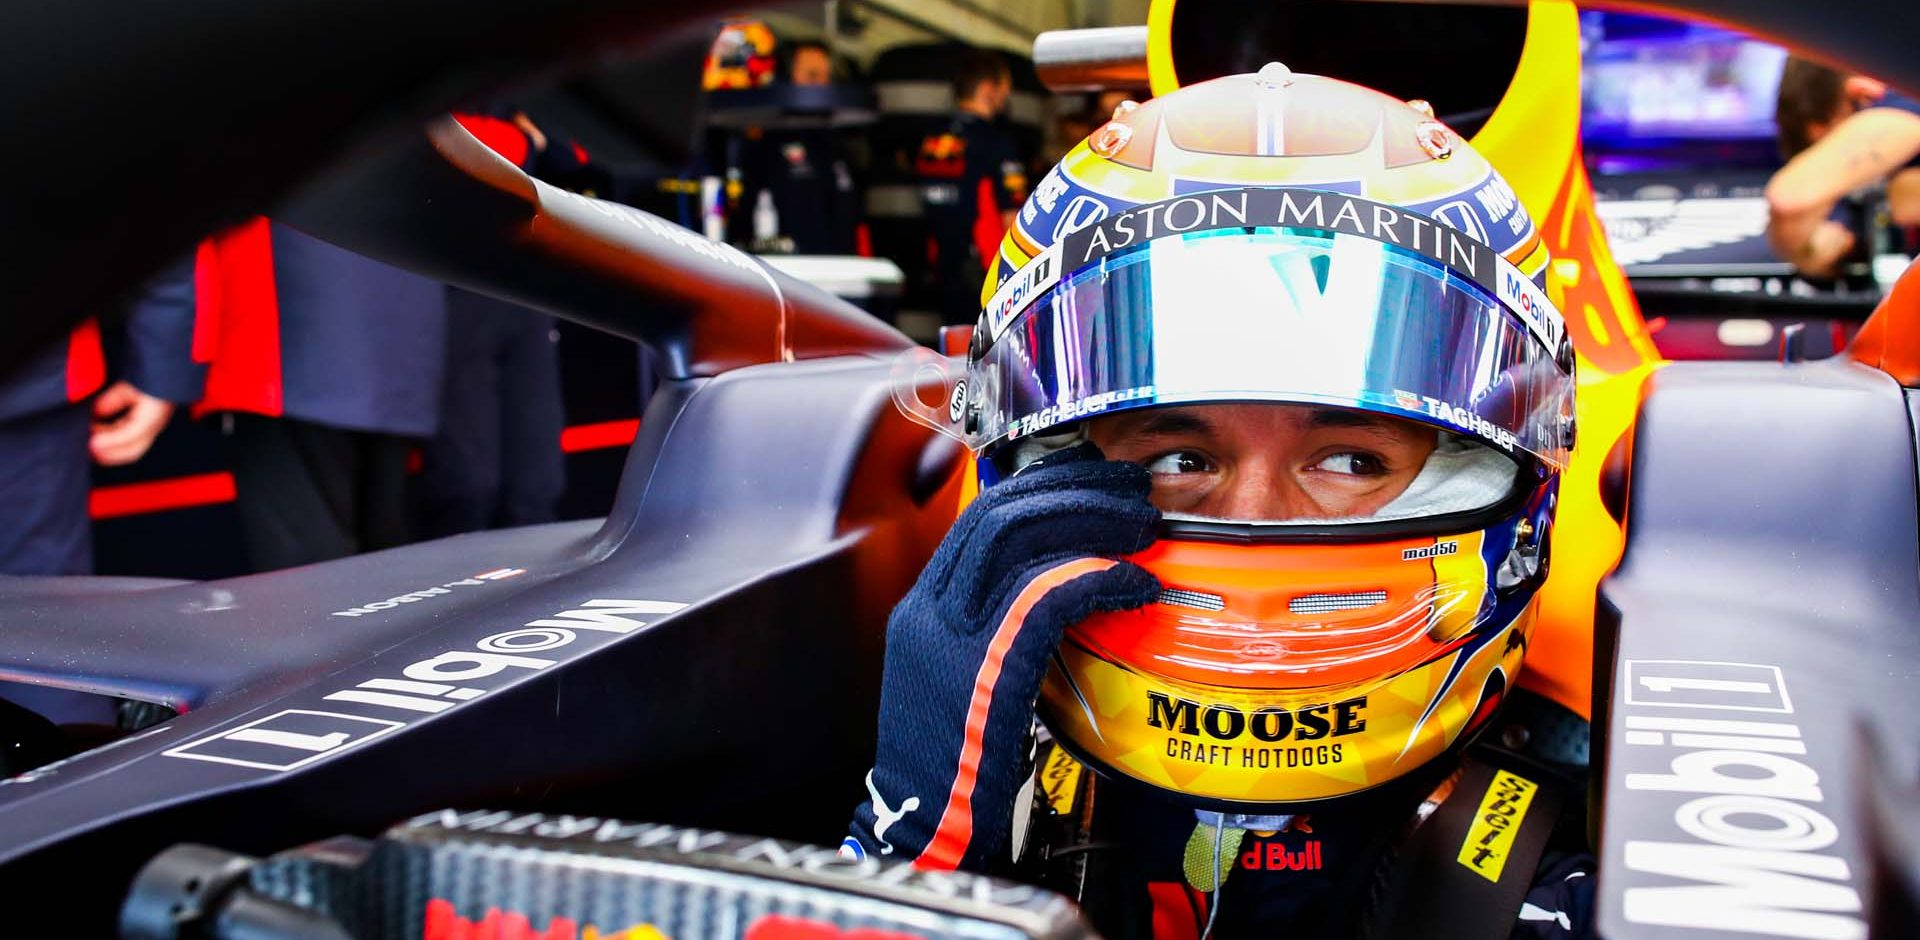 NUERBURG, GERMANY - OCTOBER 10: Alexander Albon of Thailand and Red Bull Racing prepares to drive in the garage before final practice ahead of the F1 Eifel Grand Prix at Nuerburgring on October 10, 2020 in Nuerburg, Germany. (Photo by Mark Thompson/Getty Images)